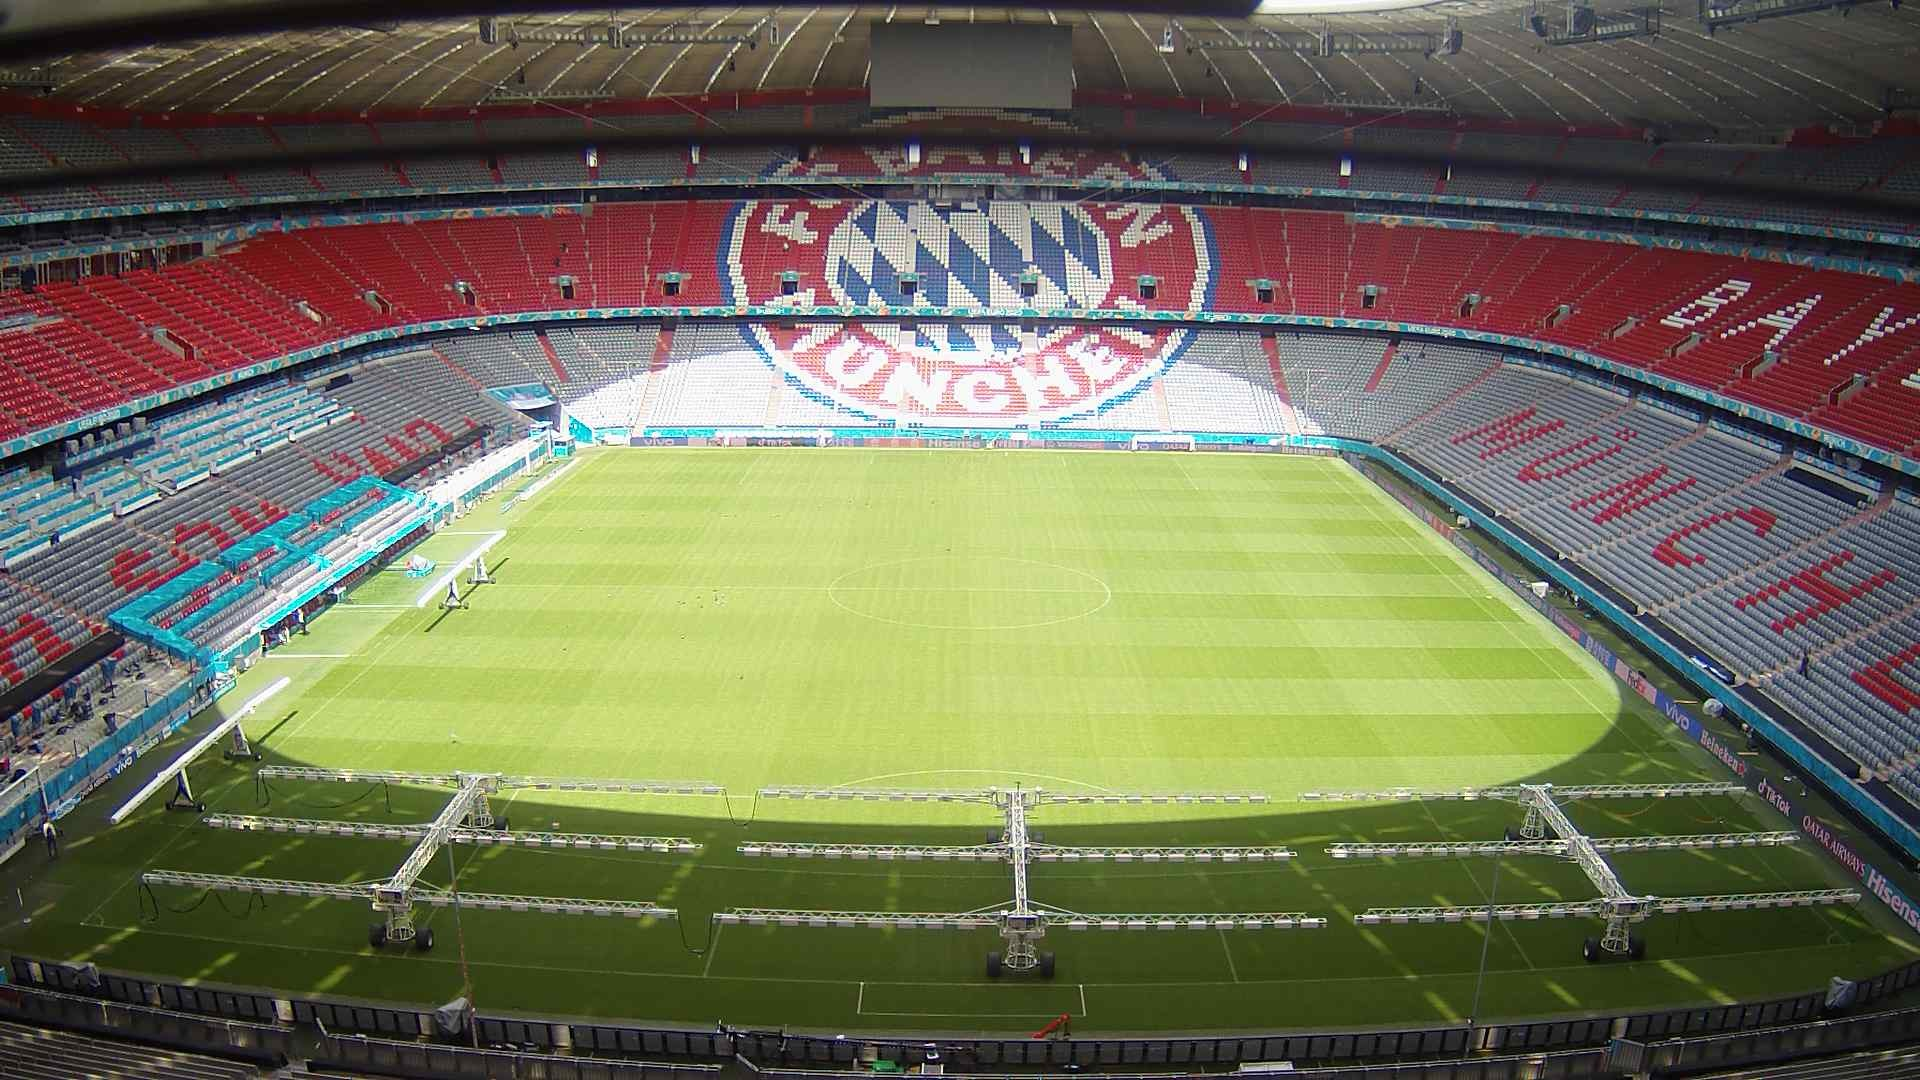 Webcam Allianz Arena In Munich Bavaria